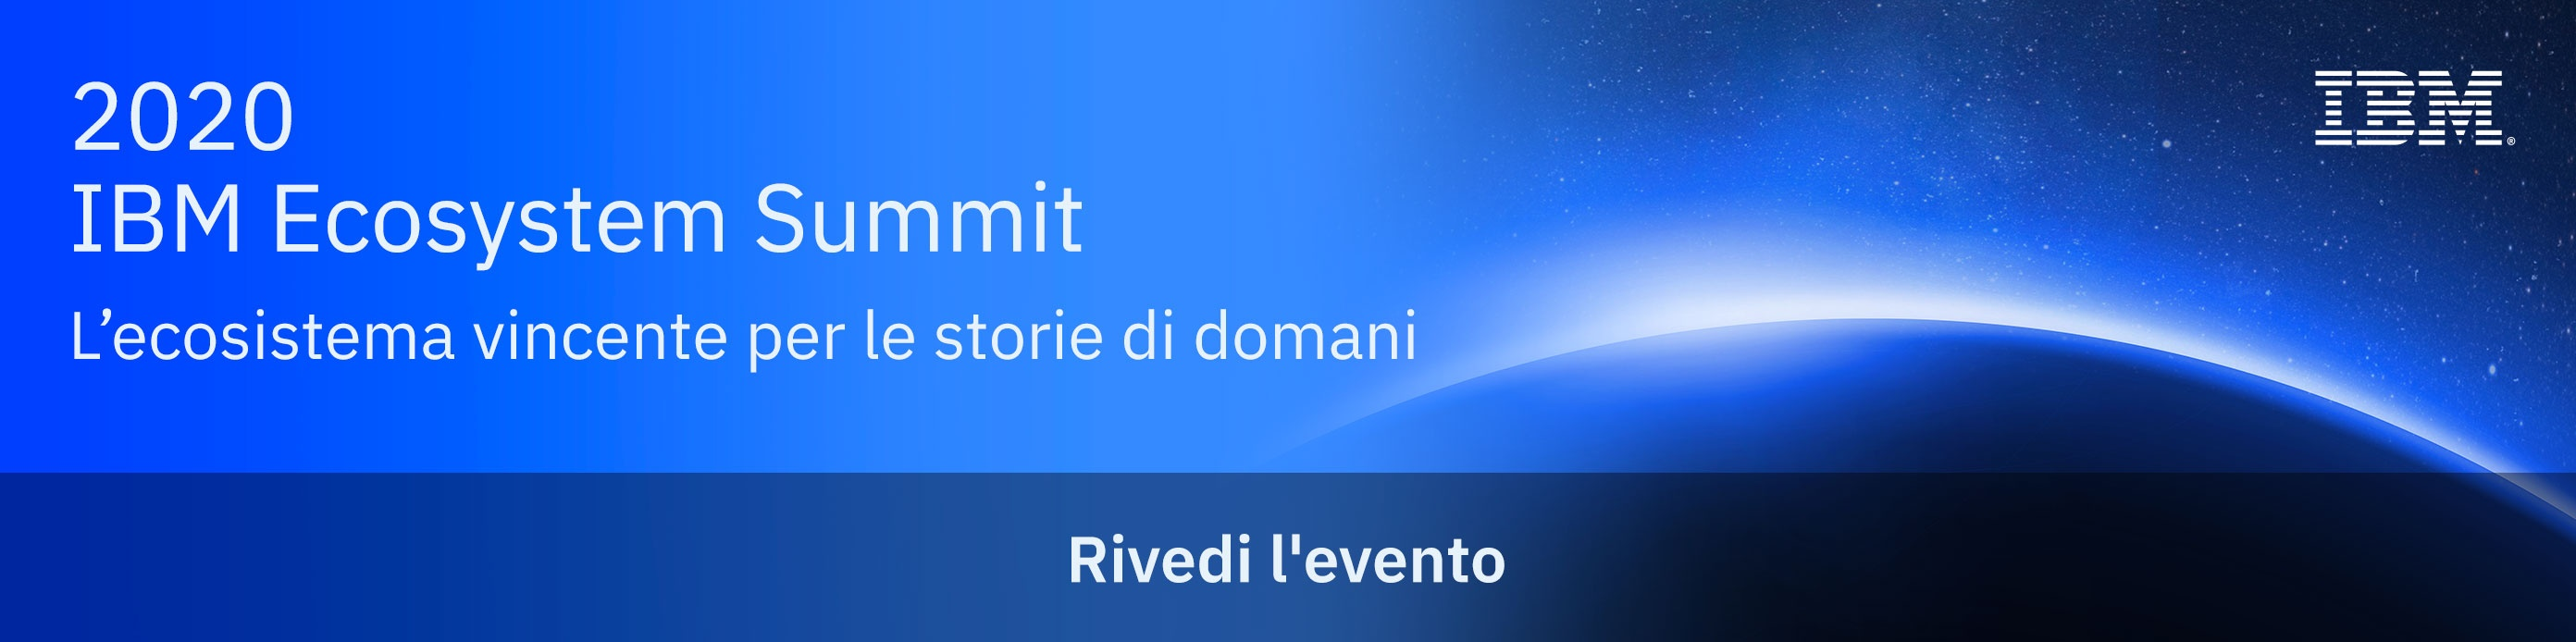 IBM Ecosystem Summit - Rivedi l'evento